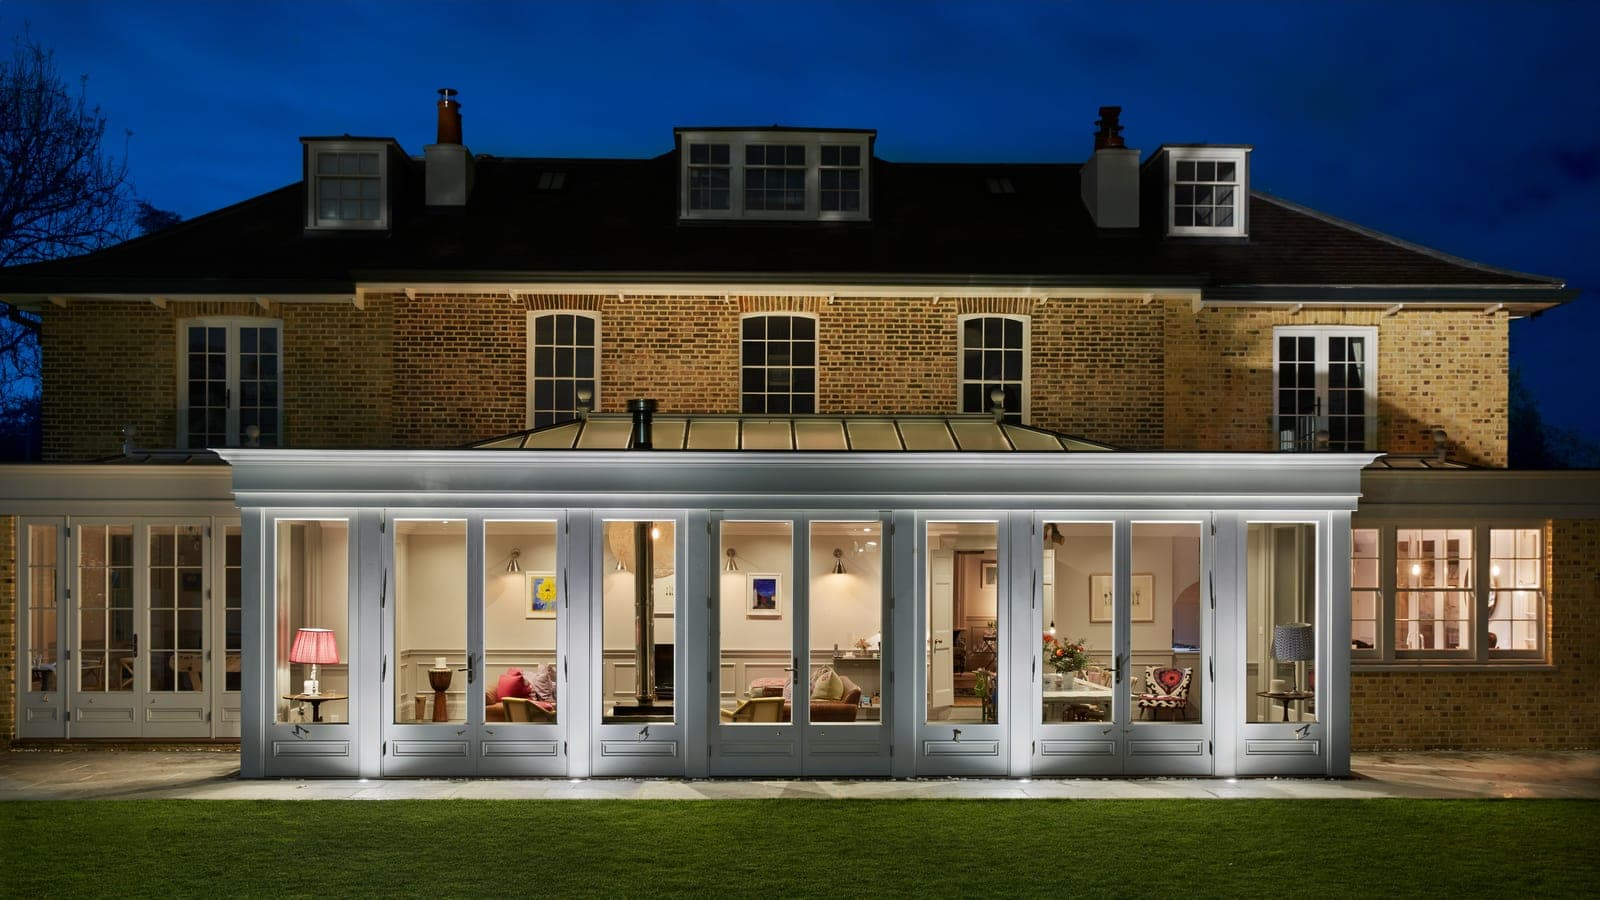 Exterior view of beautifuly lit orangery at dusk